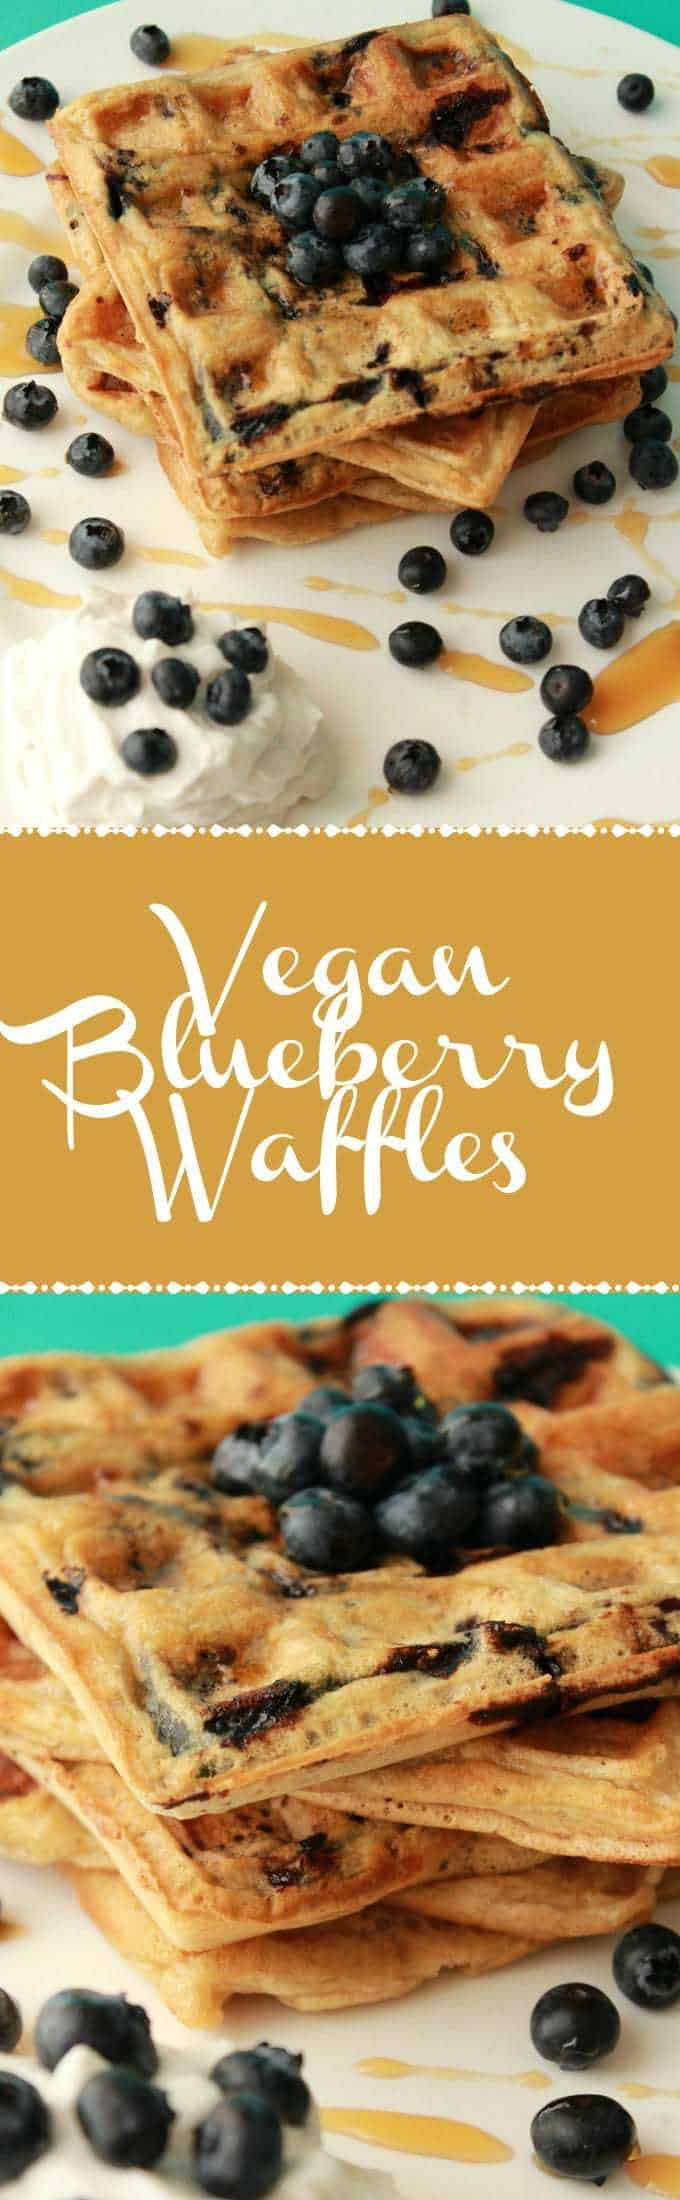 Crispy, golden-brown vegan blueberry waffles. Perfect for breakfast served with vegan whipped cream, extra blueberries and maple syrup. Vegan Breakfast | Vegan Waffles | Vegan Recipes | Vegan Dessert | Vegan Food | lovingitvegan.com